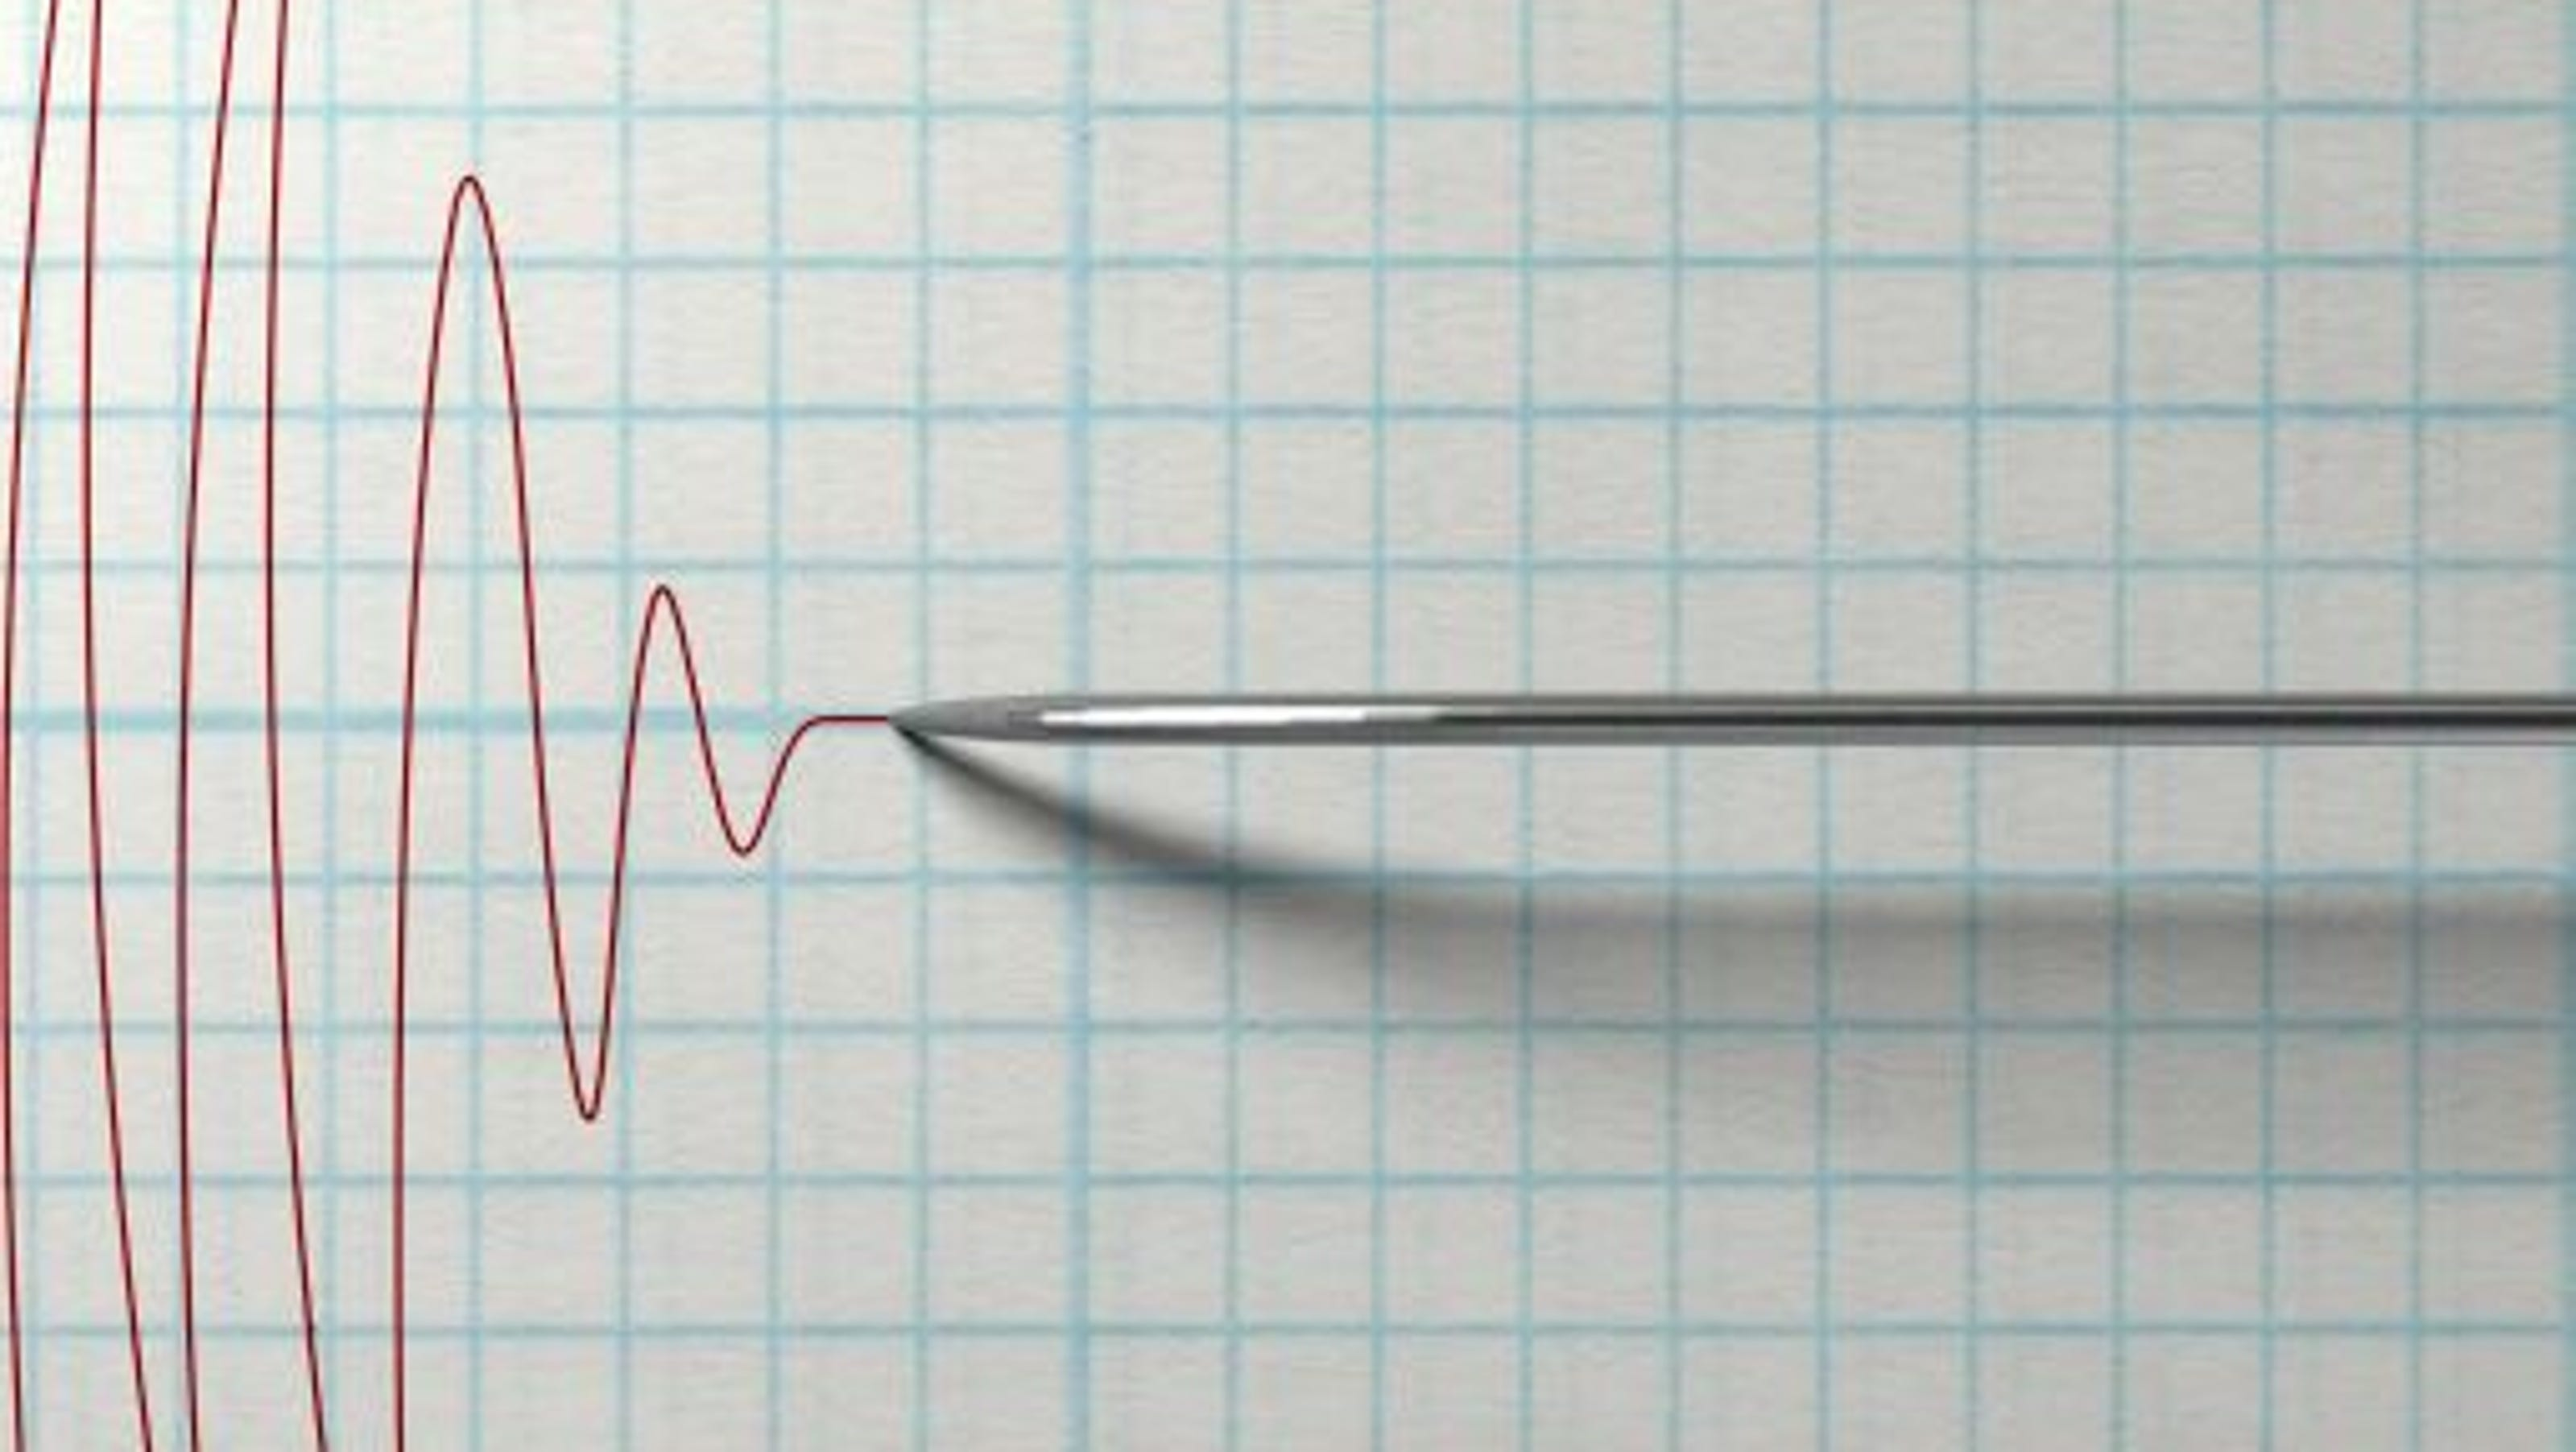 how to take a lie detector test uk